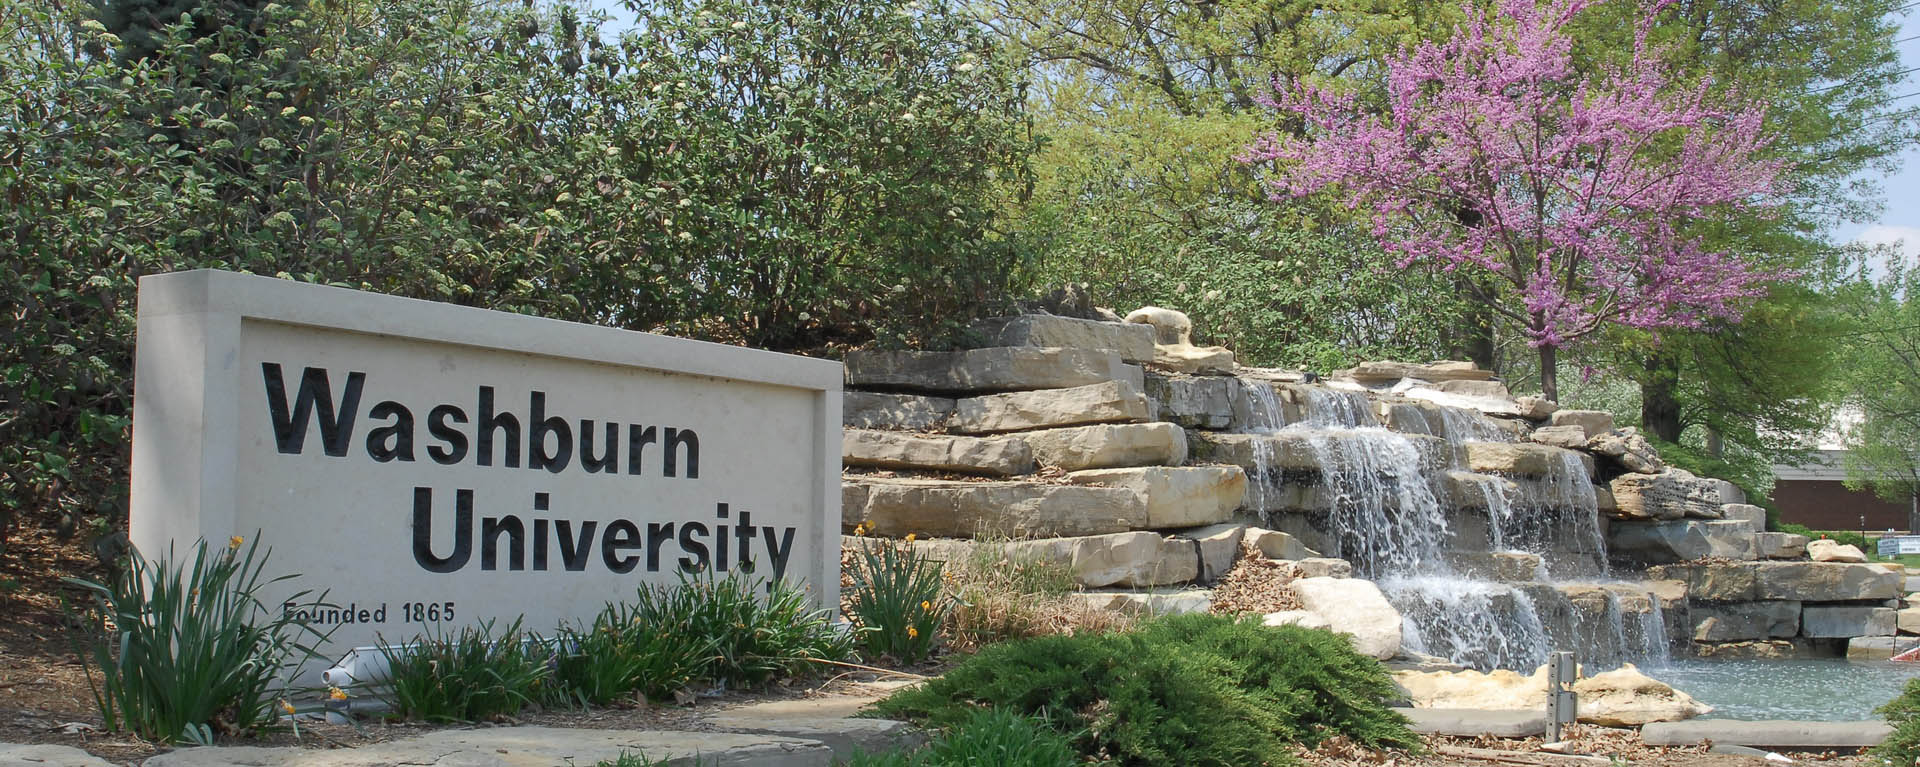 north east campus waterfall sign